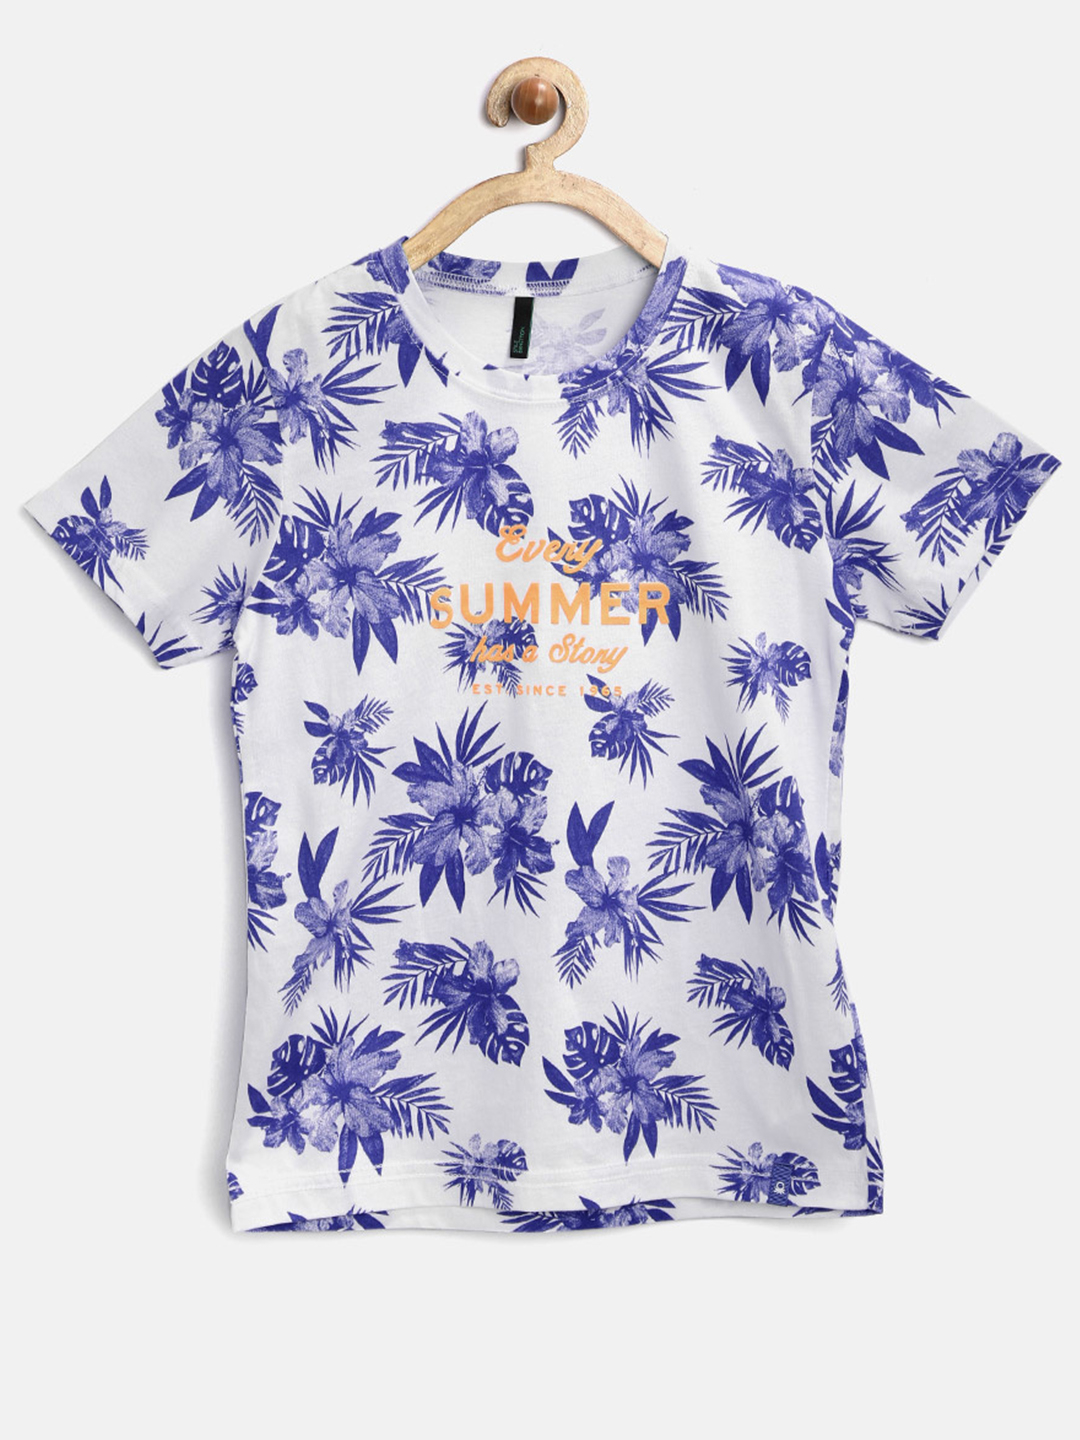 Ucb Cotton White Printed Casual Wear Boys T Shirt G3